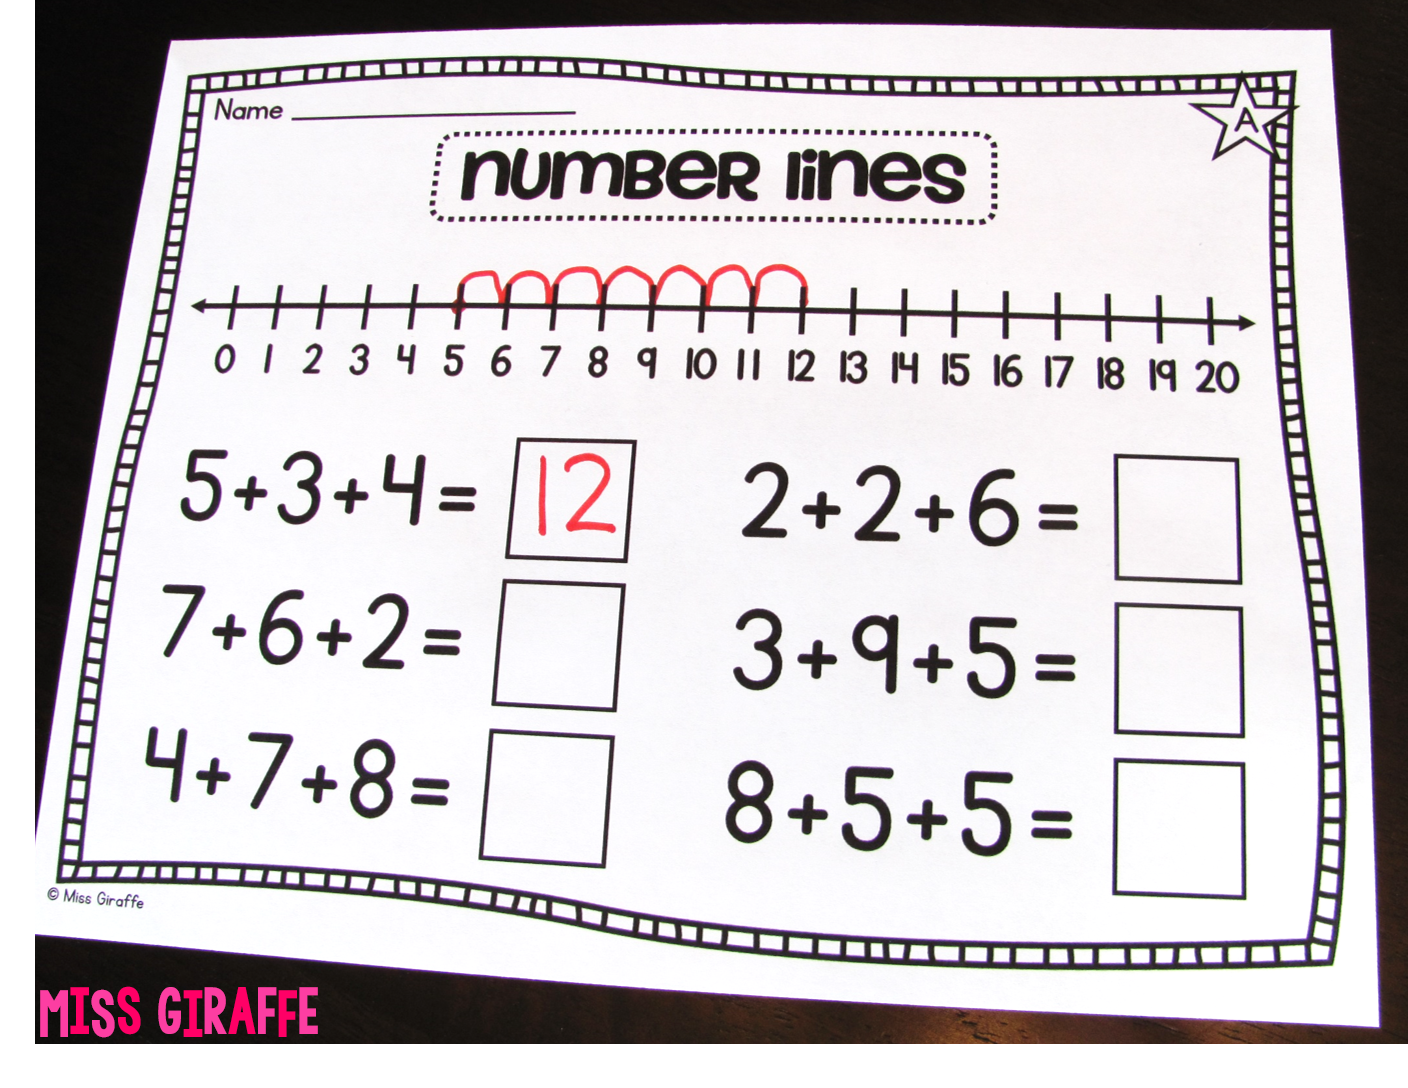 Adding 3 numbers strategies ideas!! Number lines and more!